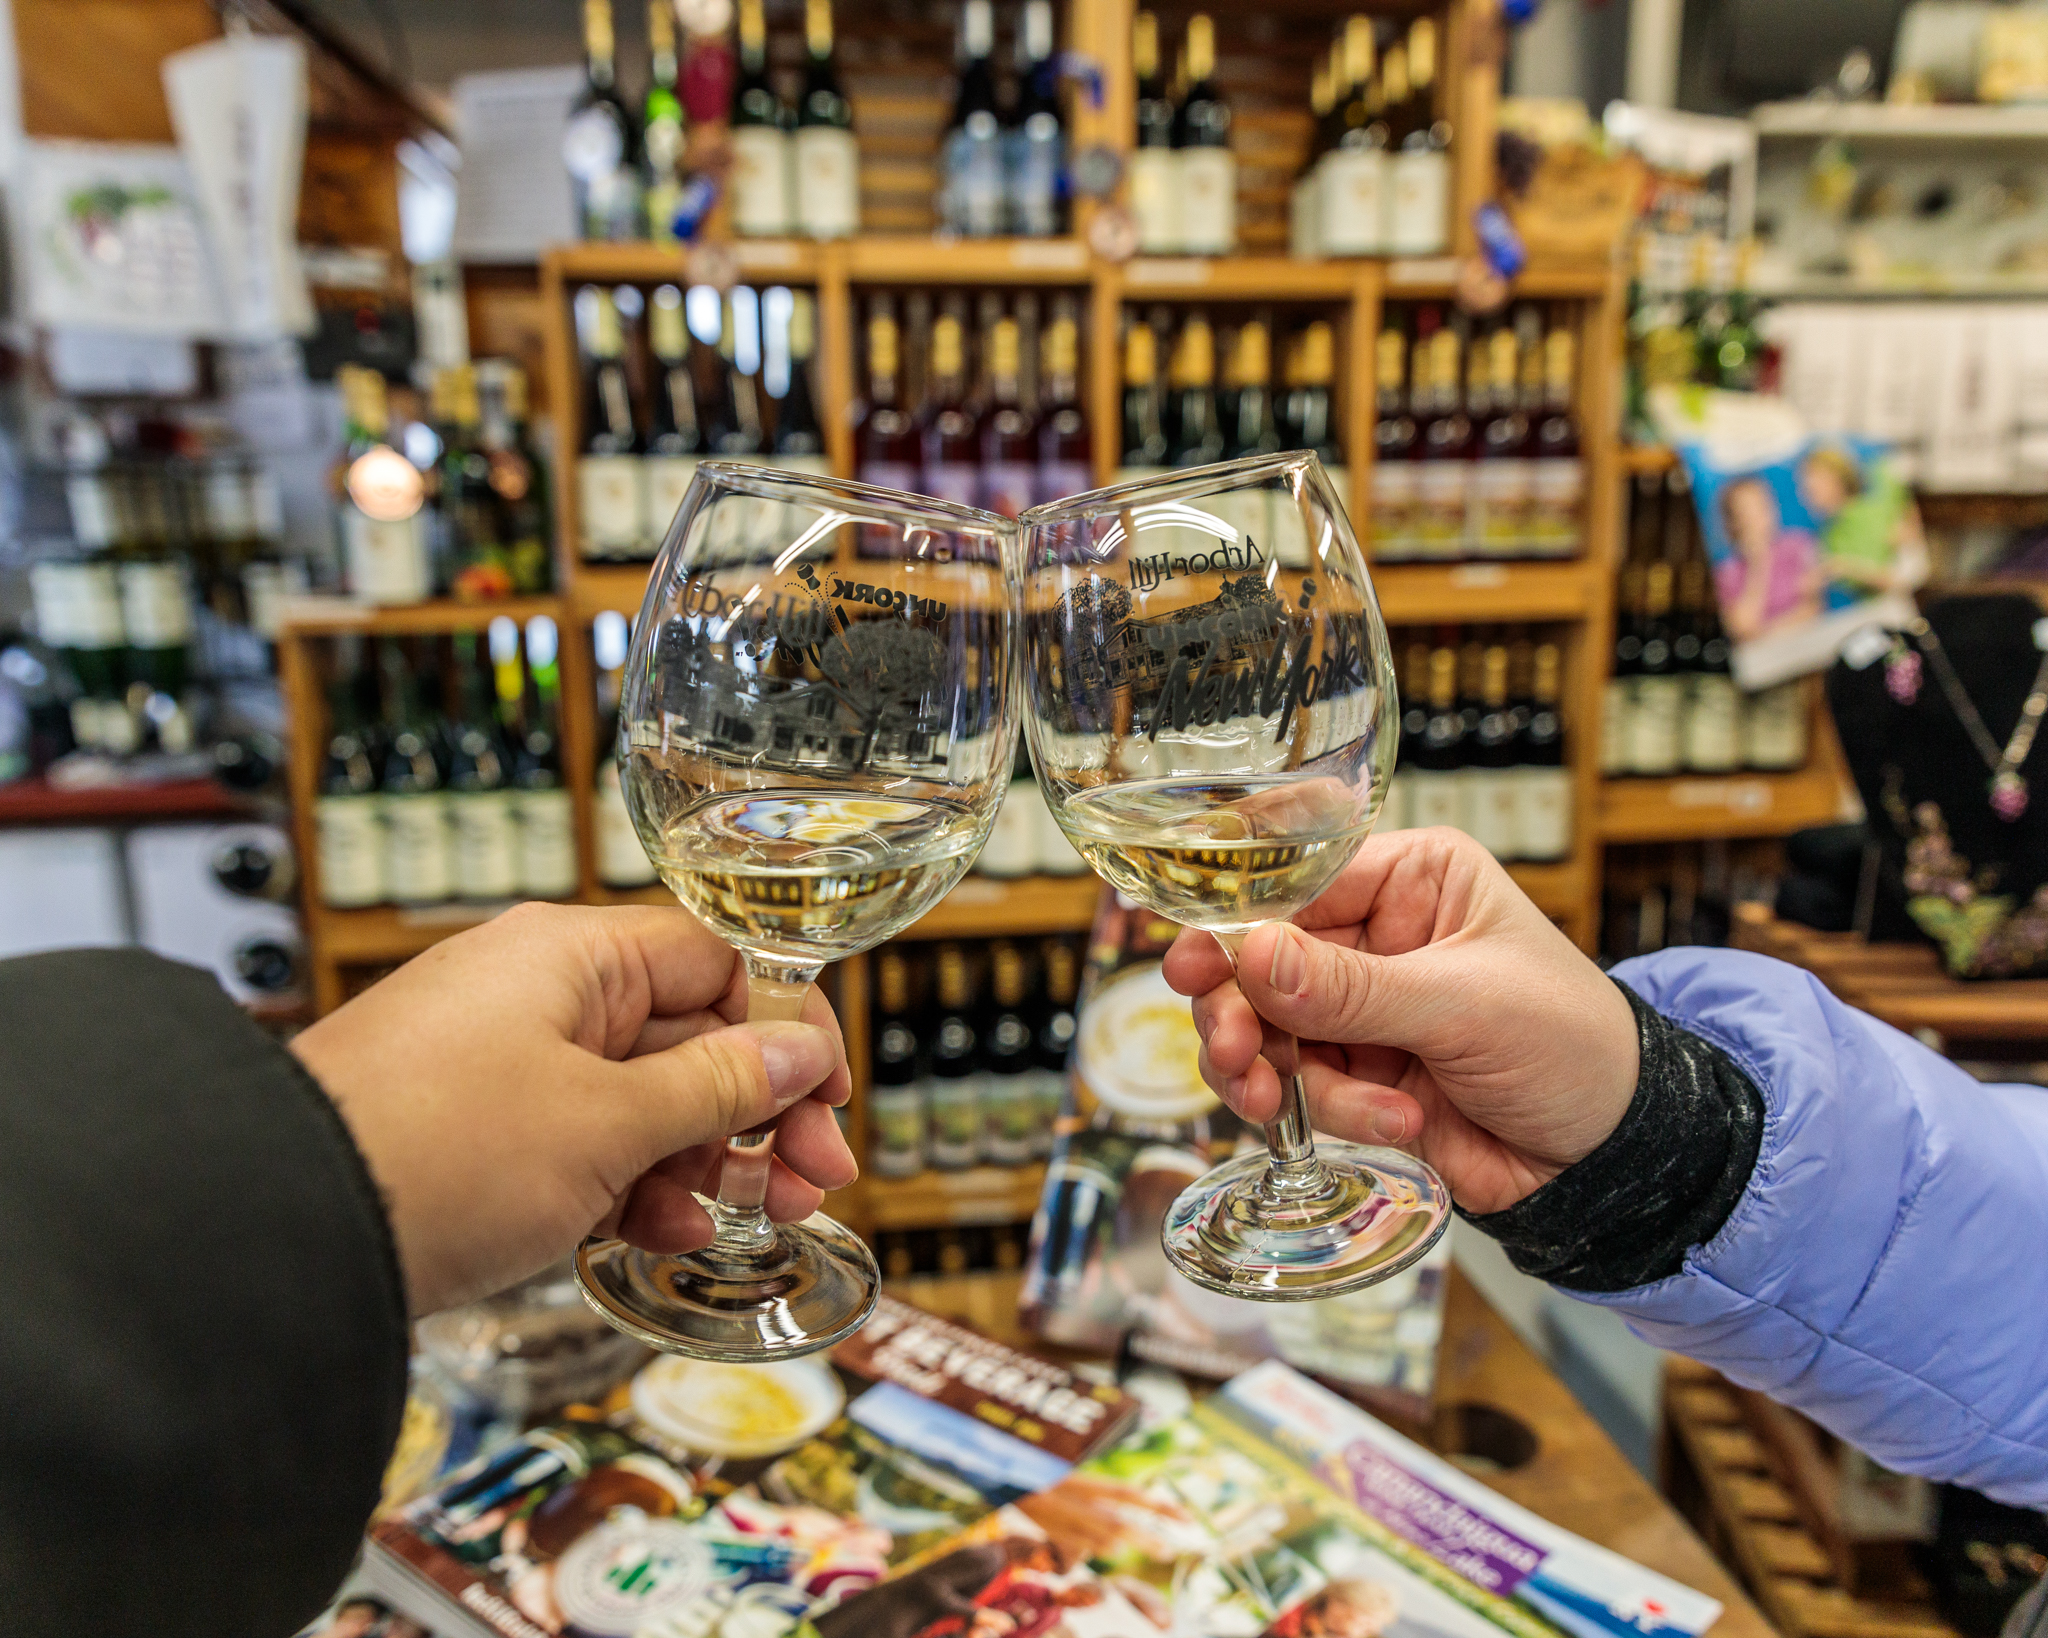 Arbor Hill Winery and Grapery // 3 Days in the Finger Lakes: A Wine Trail Itinerary